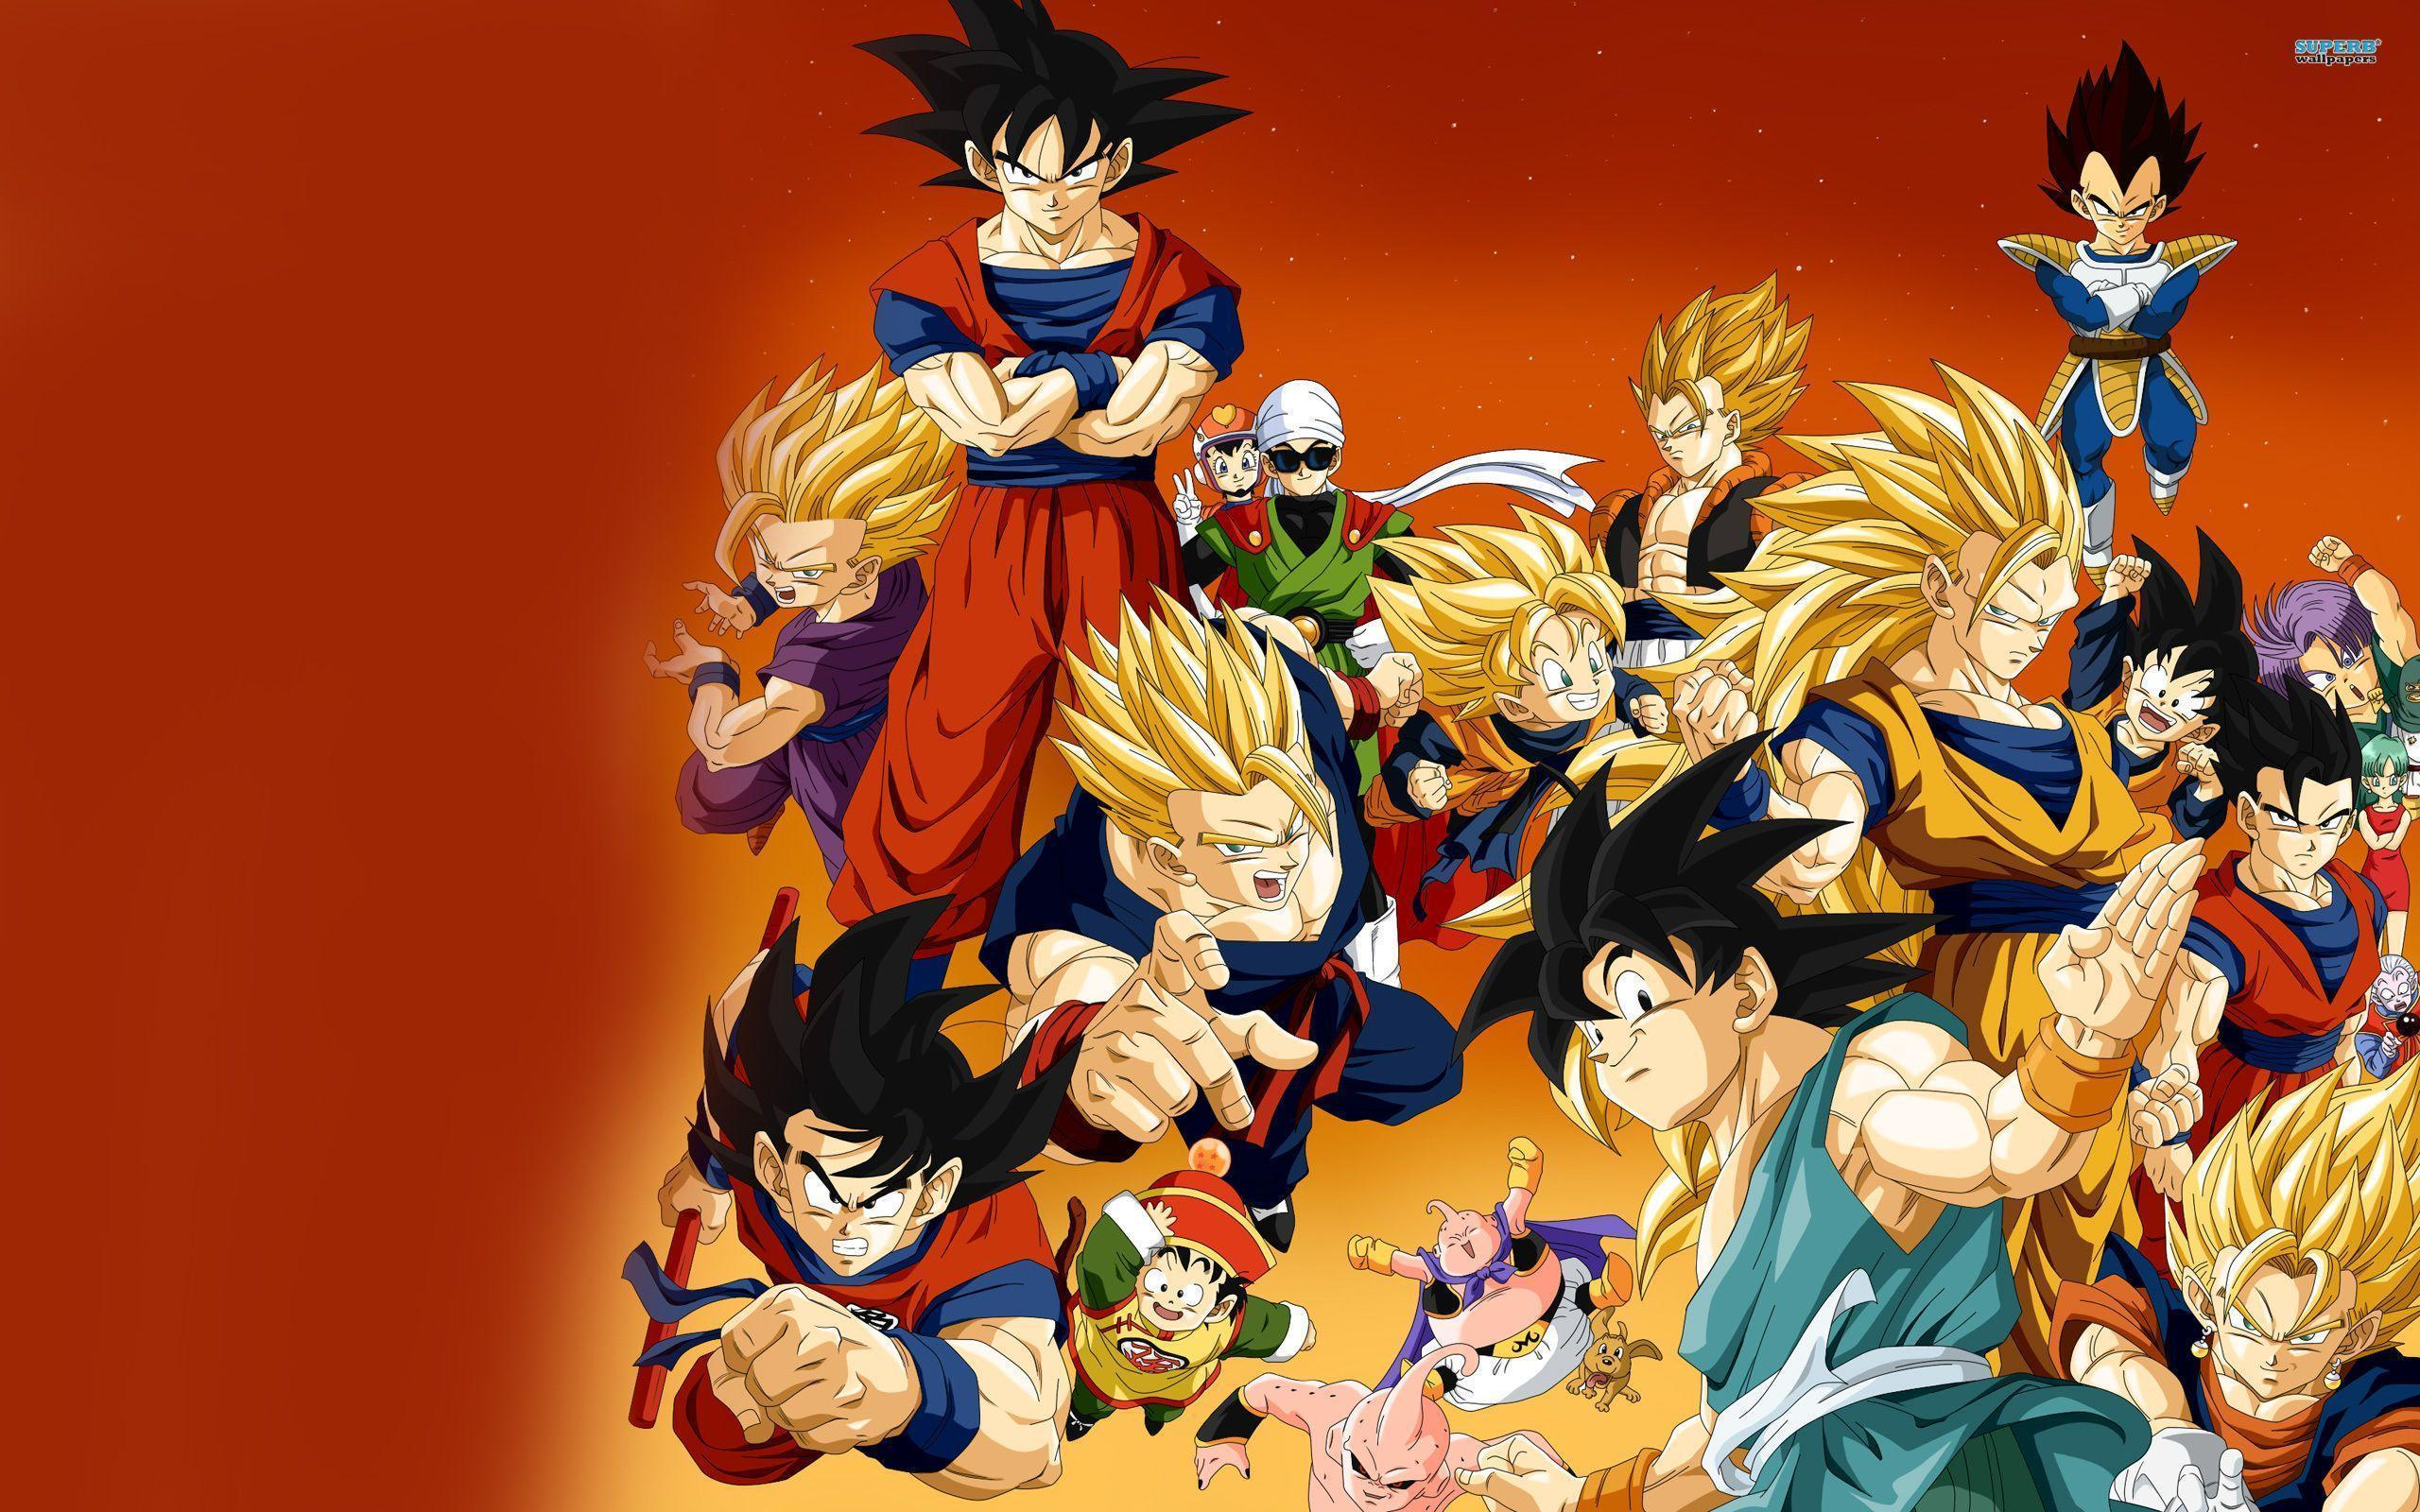 Dragon Ball Z Wallpapers Goku Super Saiyan God Wallpapers Android